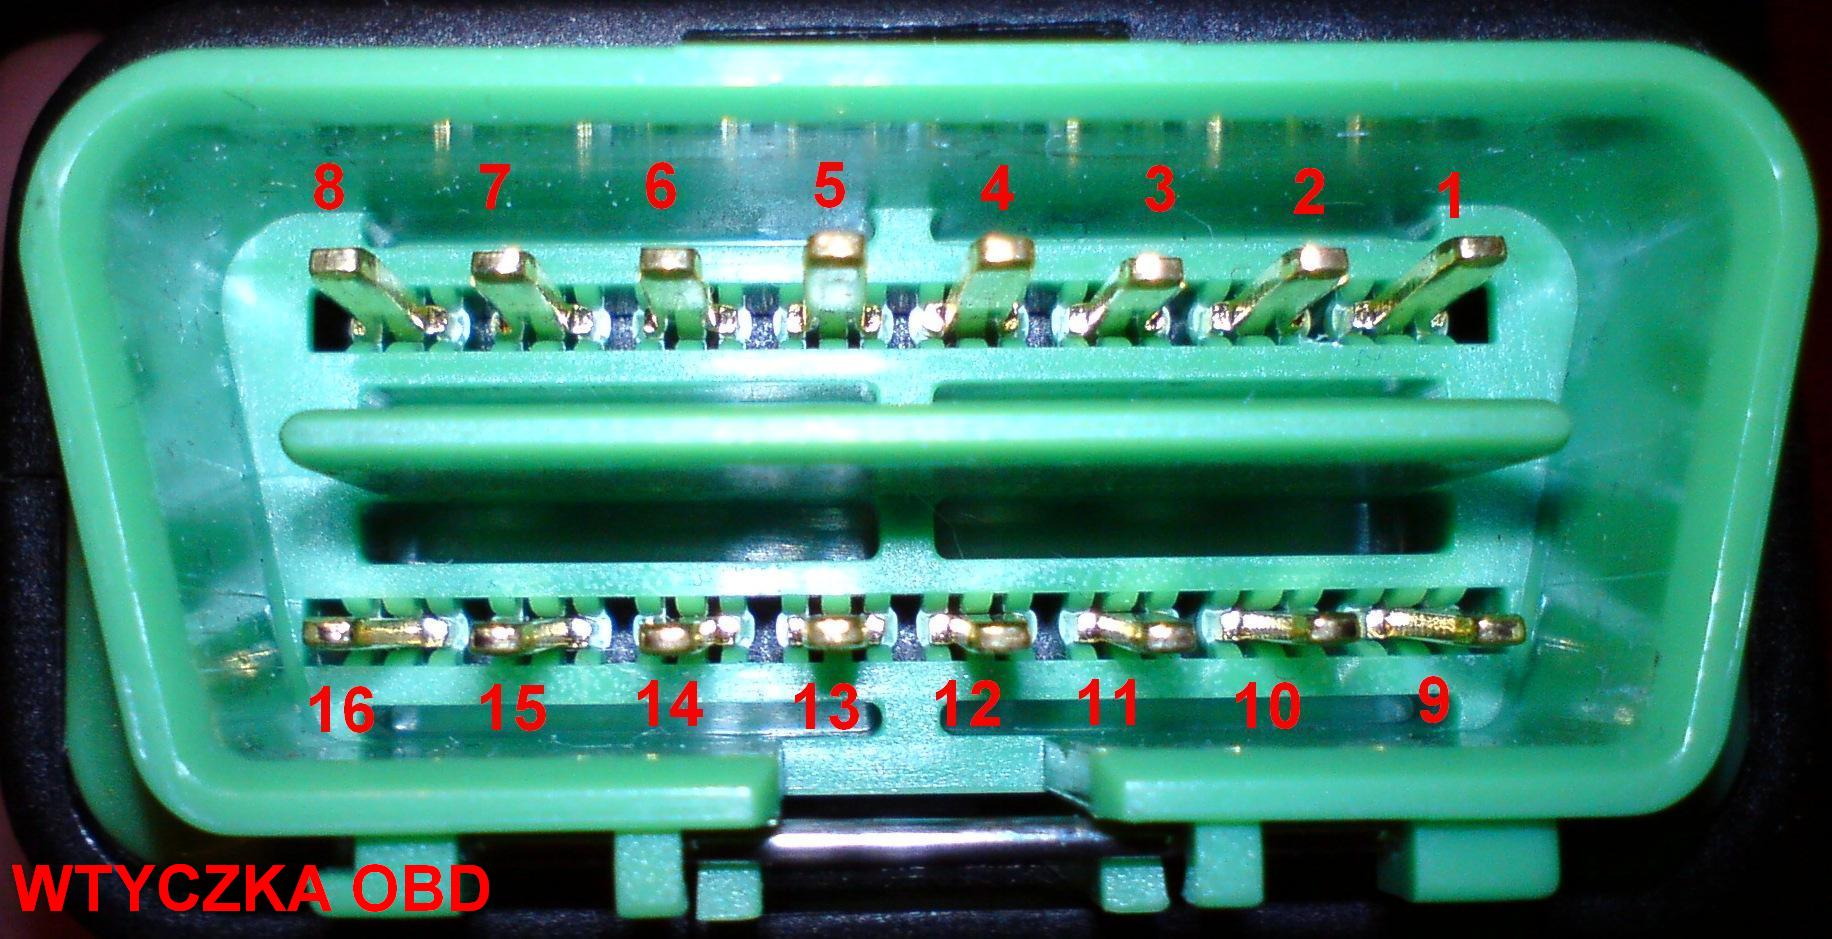 Connection Diagram Between Obd Plug And Lexia Pcb Connector